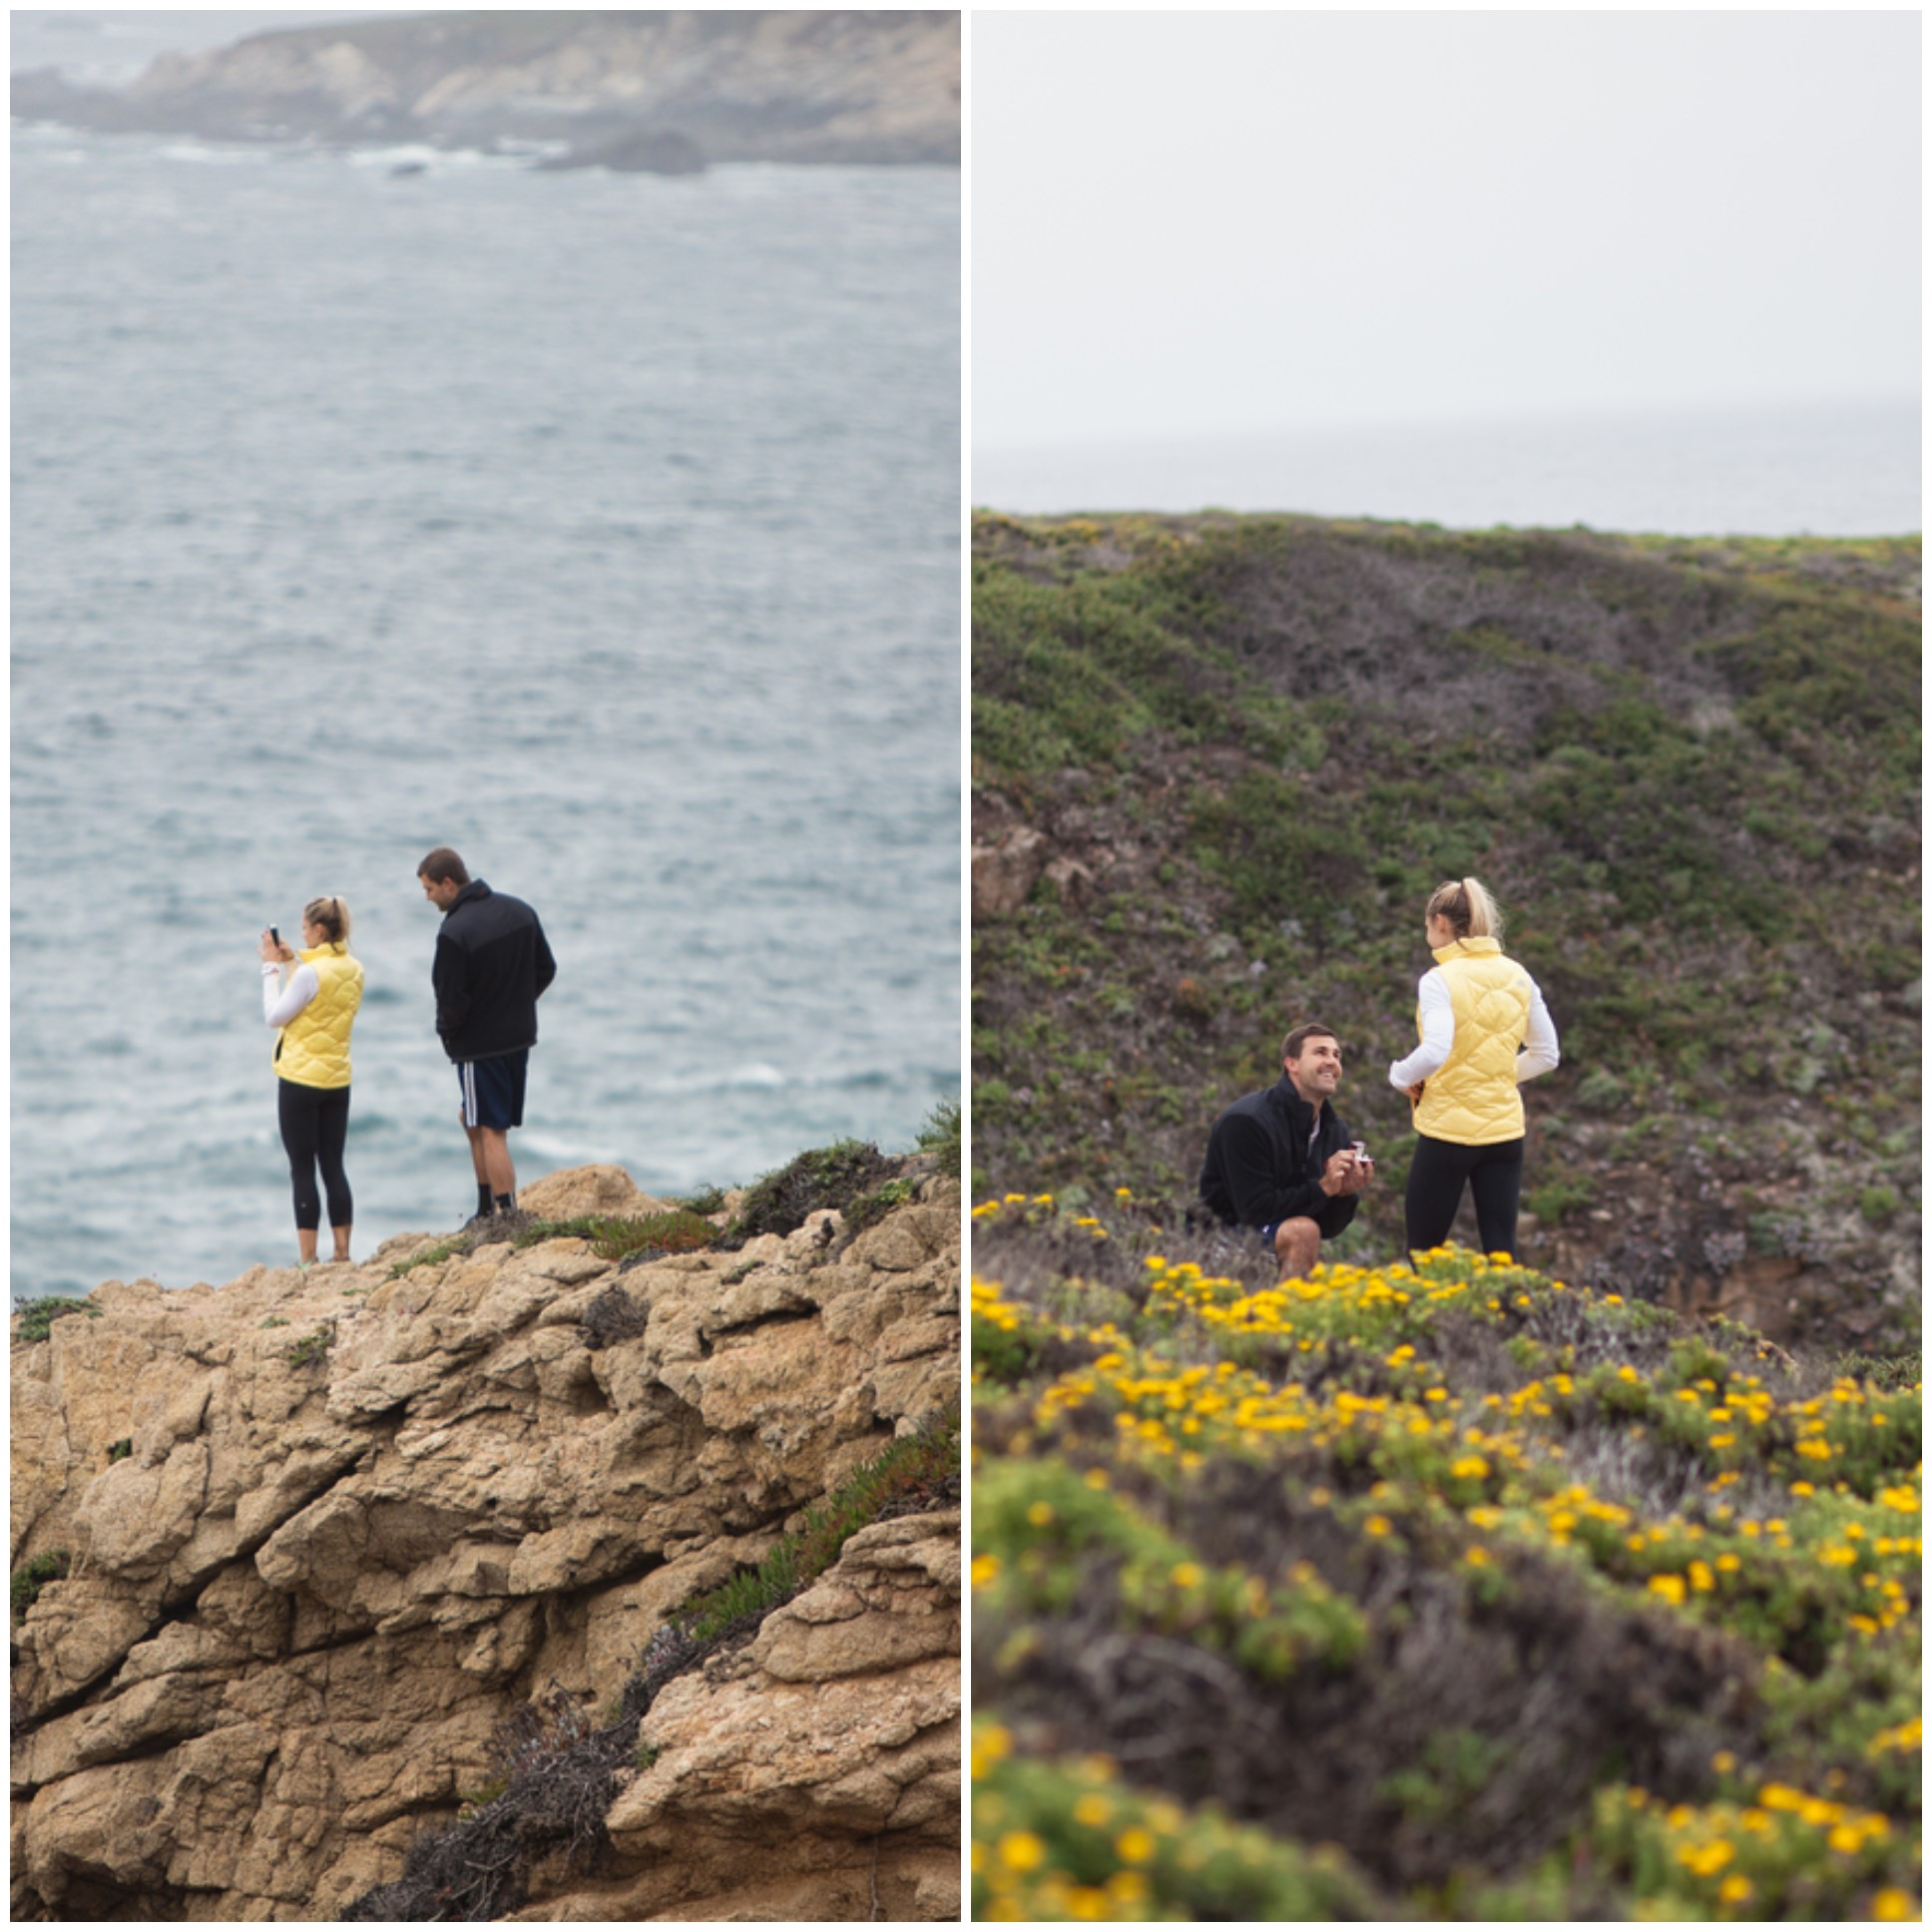 Image 7 of Matt and Stacey's Hiking Proposal at Big Sur